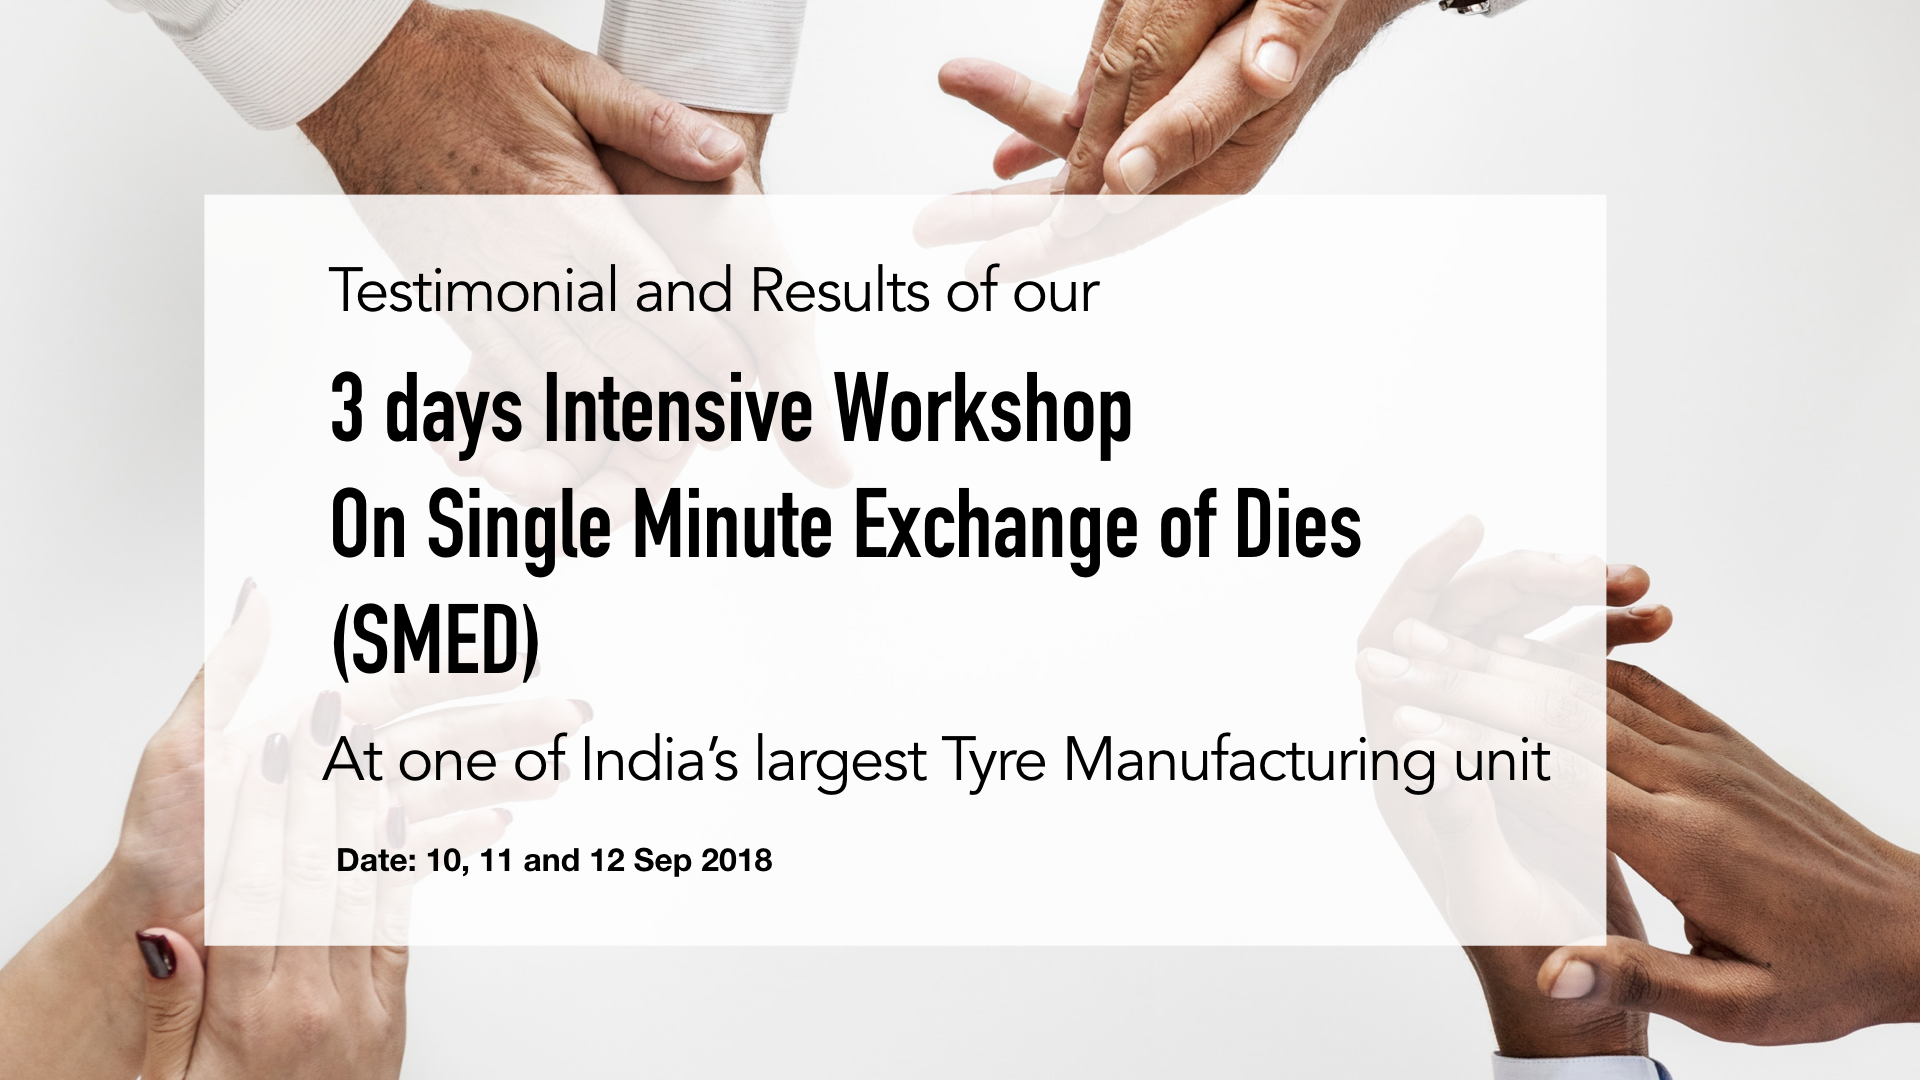 Results of SMED workshop (Single Minute Exchange of Dies)